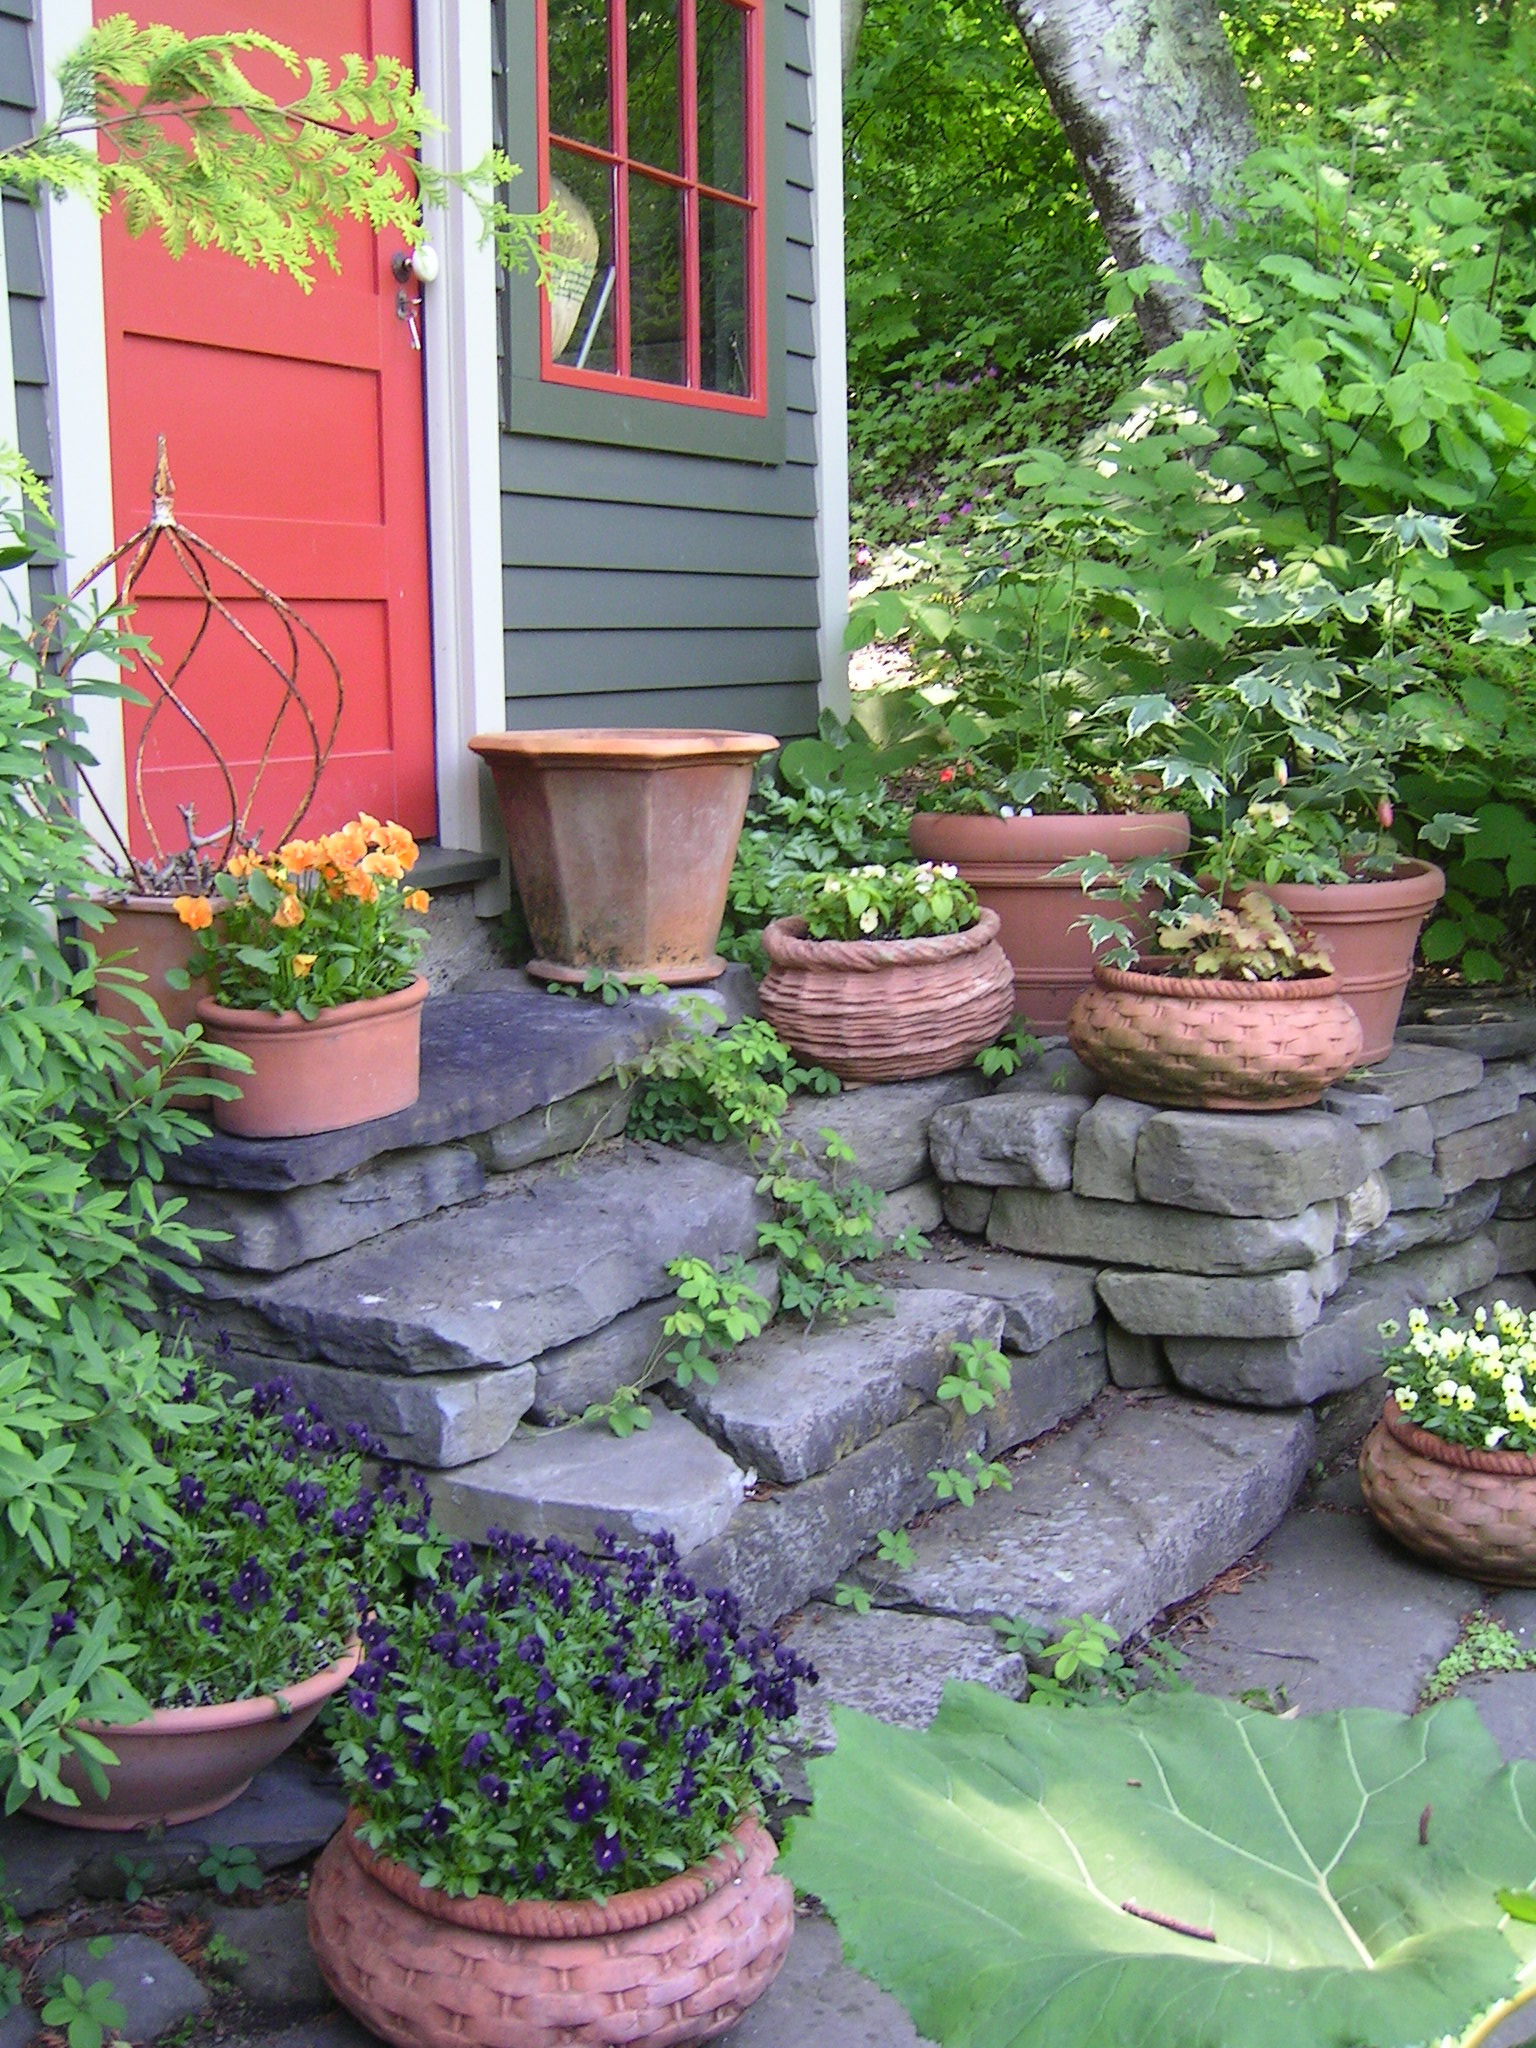 Margaret roachs upstate new york garden hortus 2 there is life you workwithnaturefo